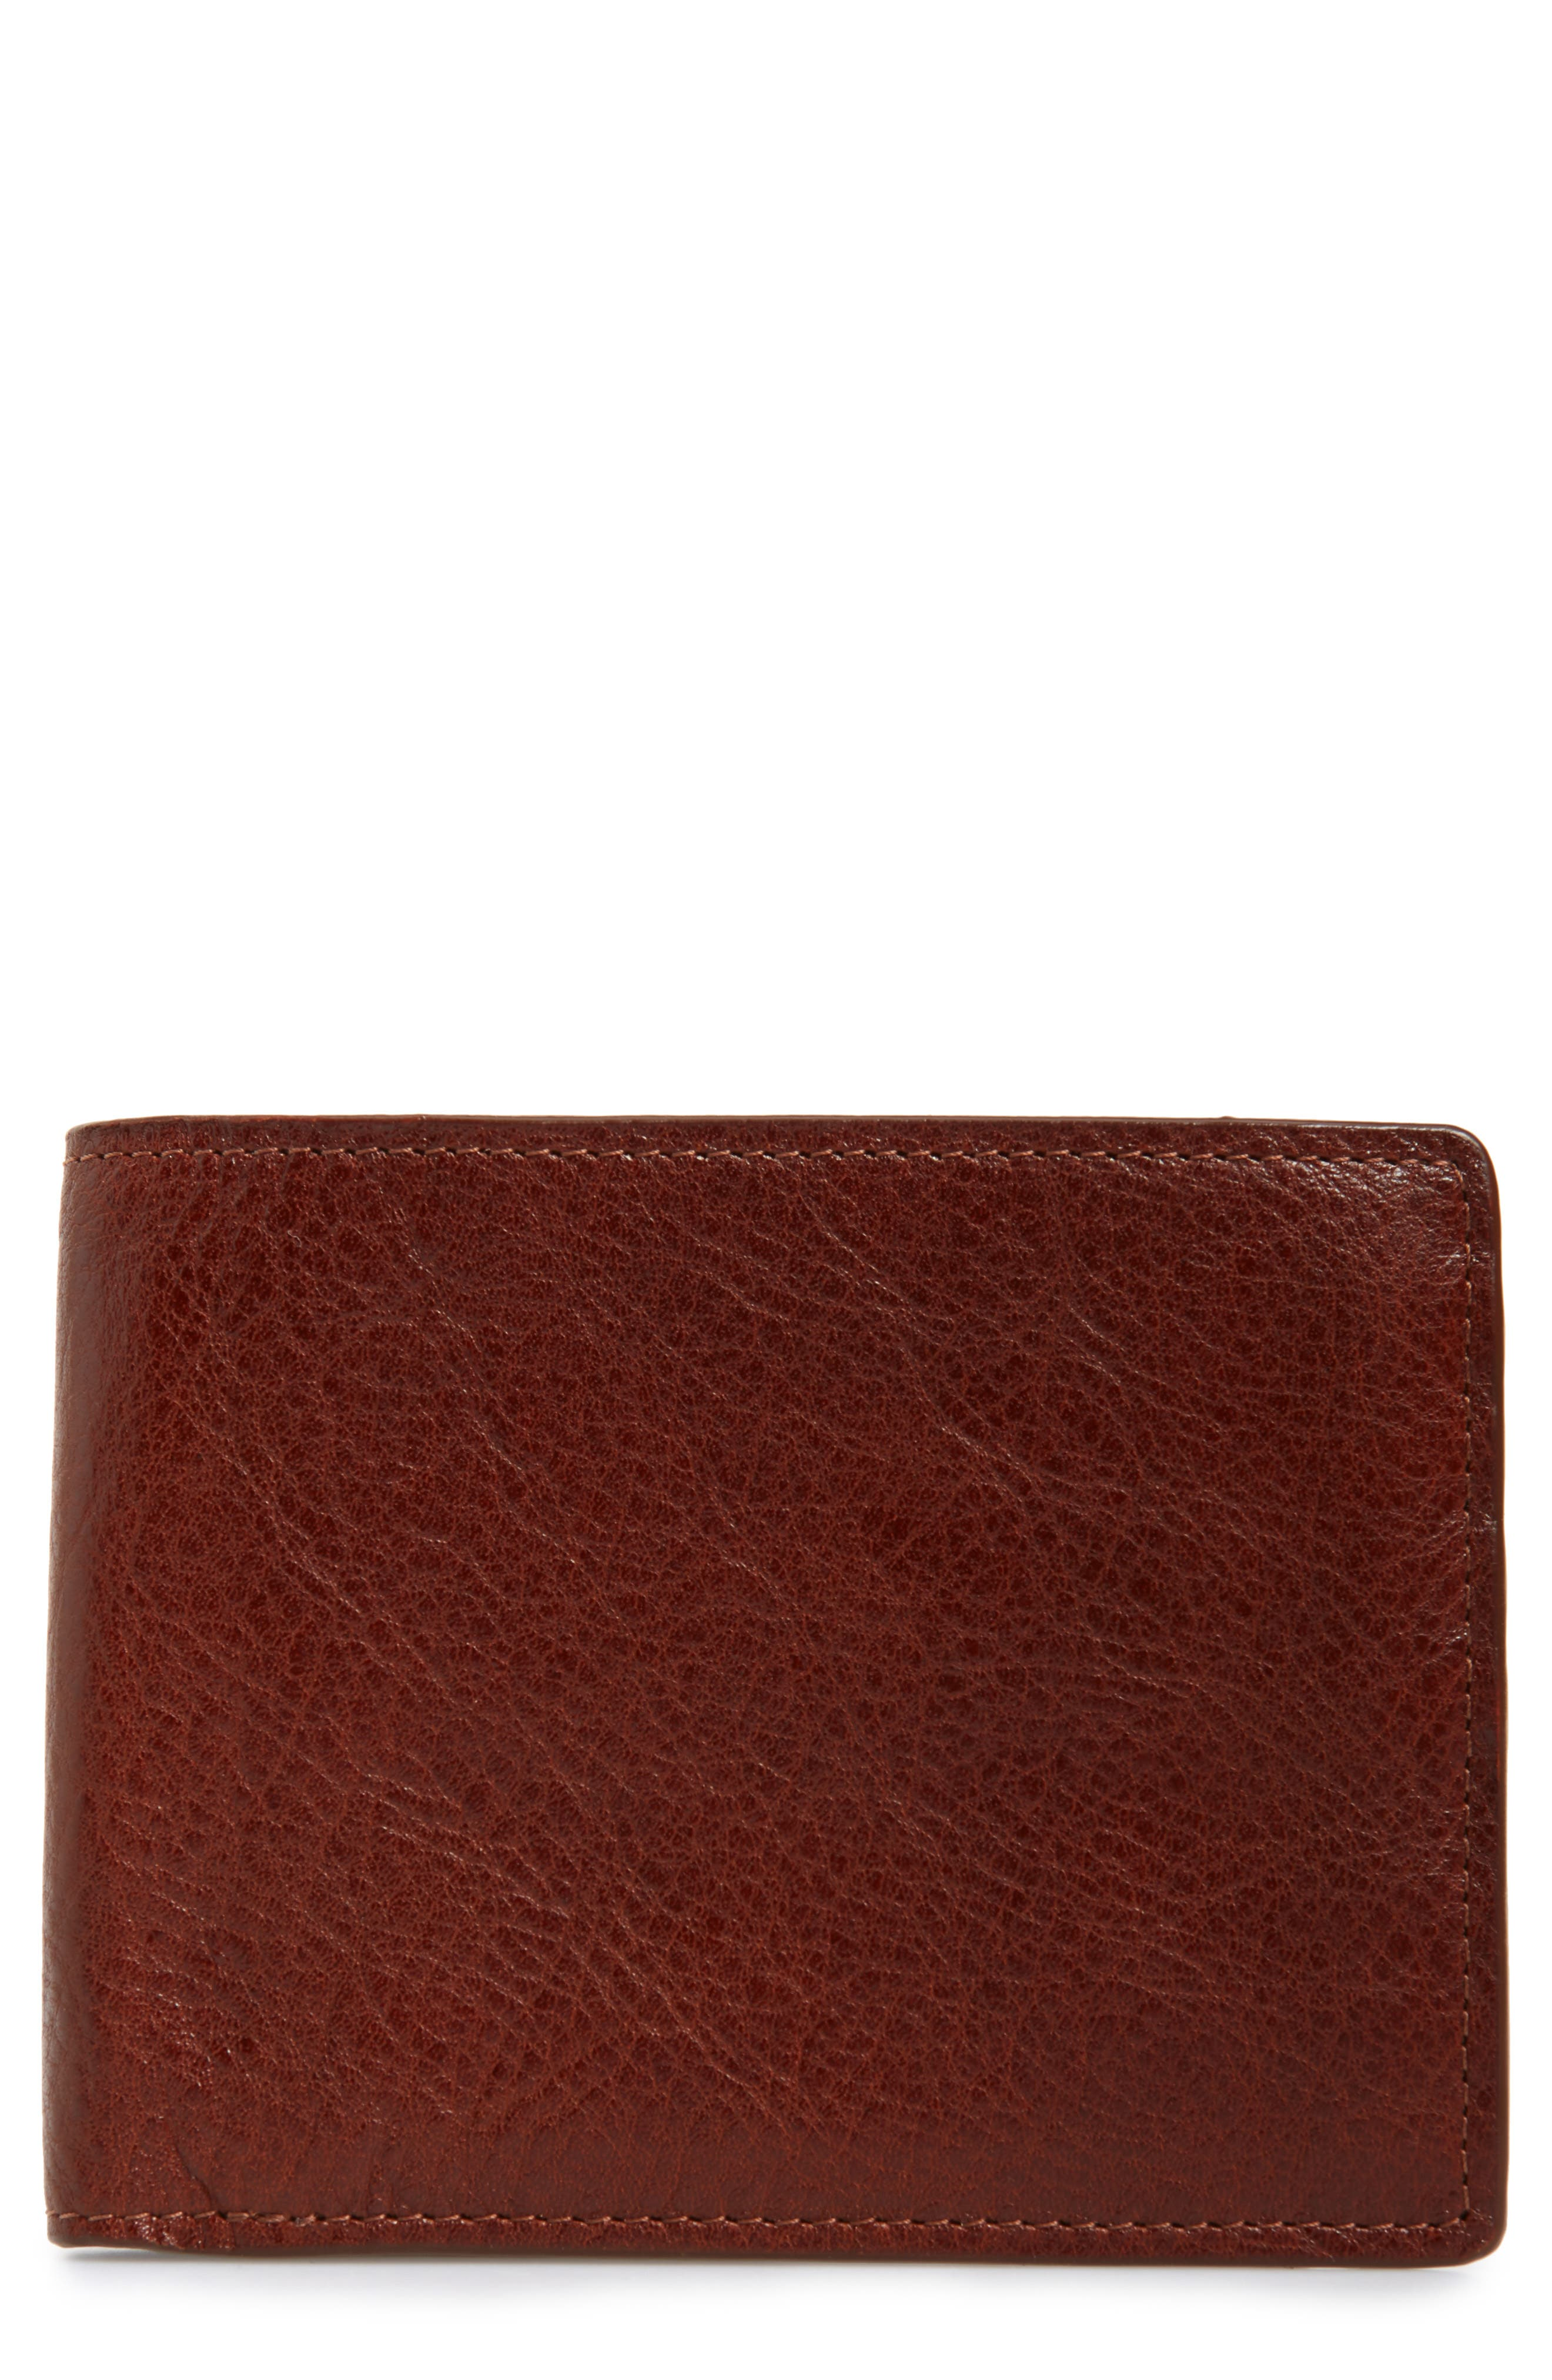 NORDSTROM MEN'S SHOP,                             Richmond Leather Wallet,                             Main thumbnail 1, color,                             BROWN HENNA